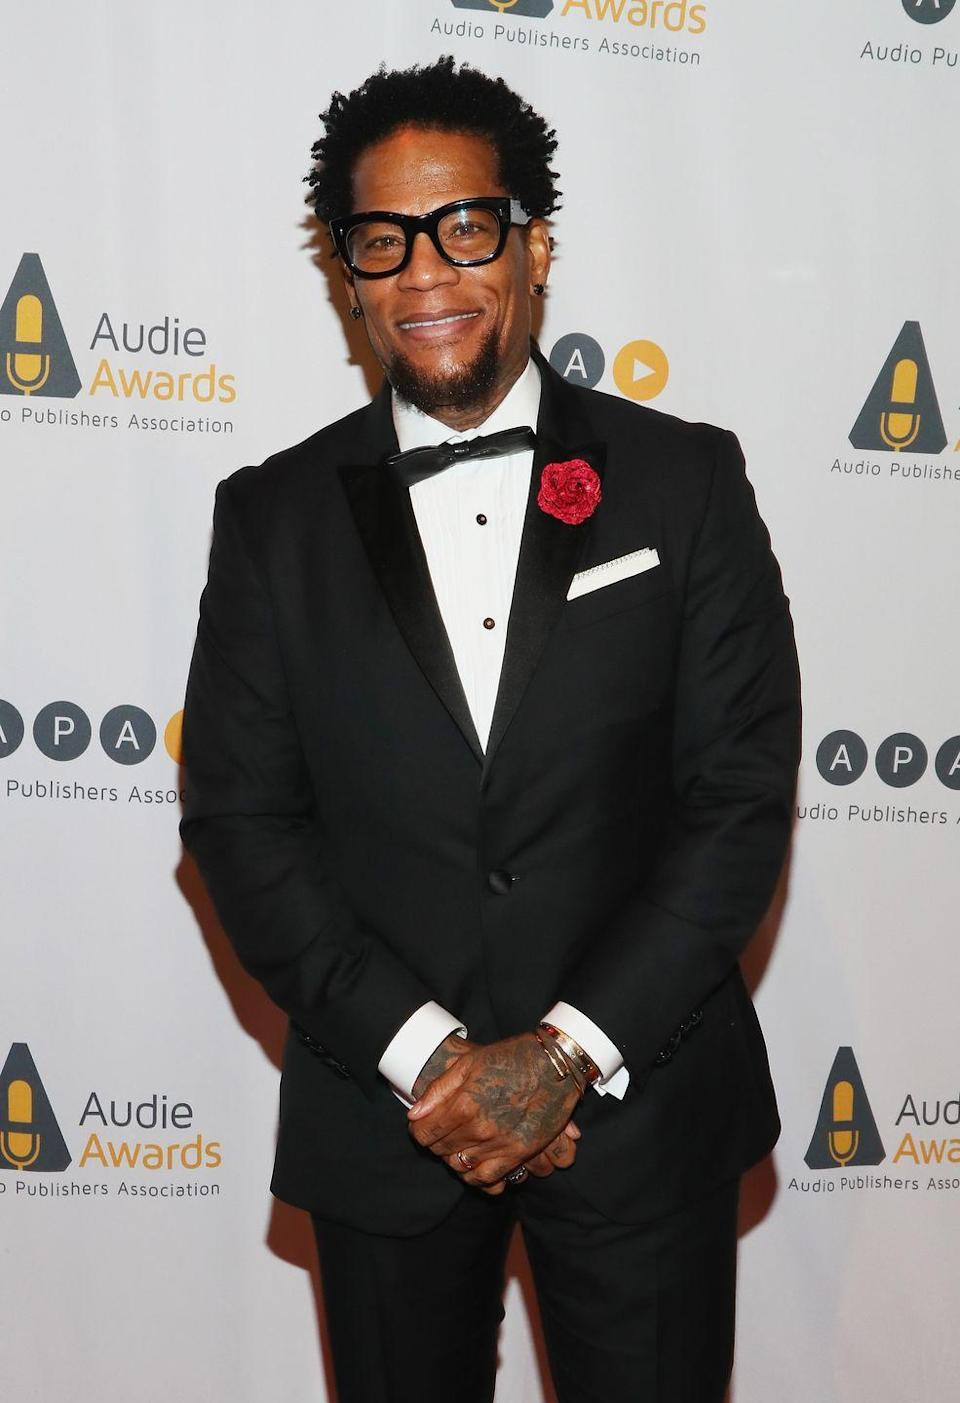 """<p>The comedian, actor, and <em>Dancing With The Stars</em> alum <a href=""""https://www.businessinsider.com/celebrities-who-worked-at-mcdonalds#dl-hughley-16"""" rel=""""nofollow noopener"""" target=""""_blank"""" data-ylk=""""slk:reportedly got his start cleaning the lobby at McDonald's"""" class=""""link rapid-noclick-resp"""">reportedly got his start cleaning the lobby at McDonald's</a>. But there probably isn't any lost love between D.L. and McDonald's: he once tweeted, """"It's funny that McDonald's uses a heart in their commercials, When u consider how many hearts their food has stopped!"""" Yikes.</p>"""